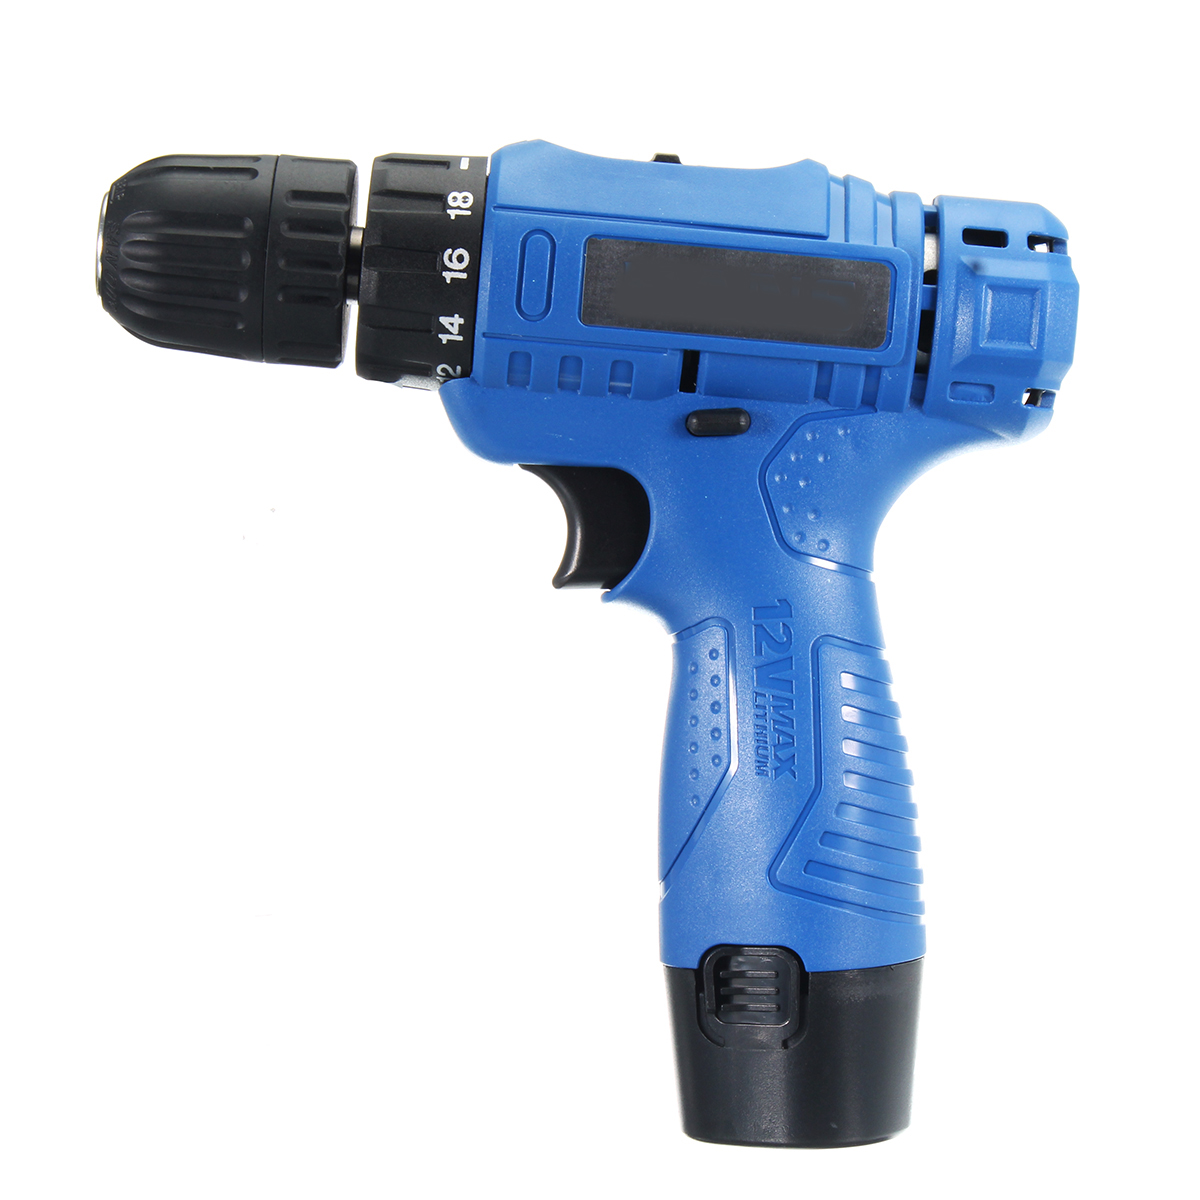 12v Rechargeable Cordless Drill Lithium Ion Battery